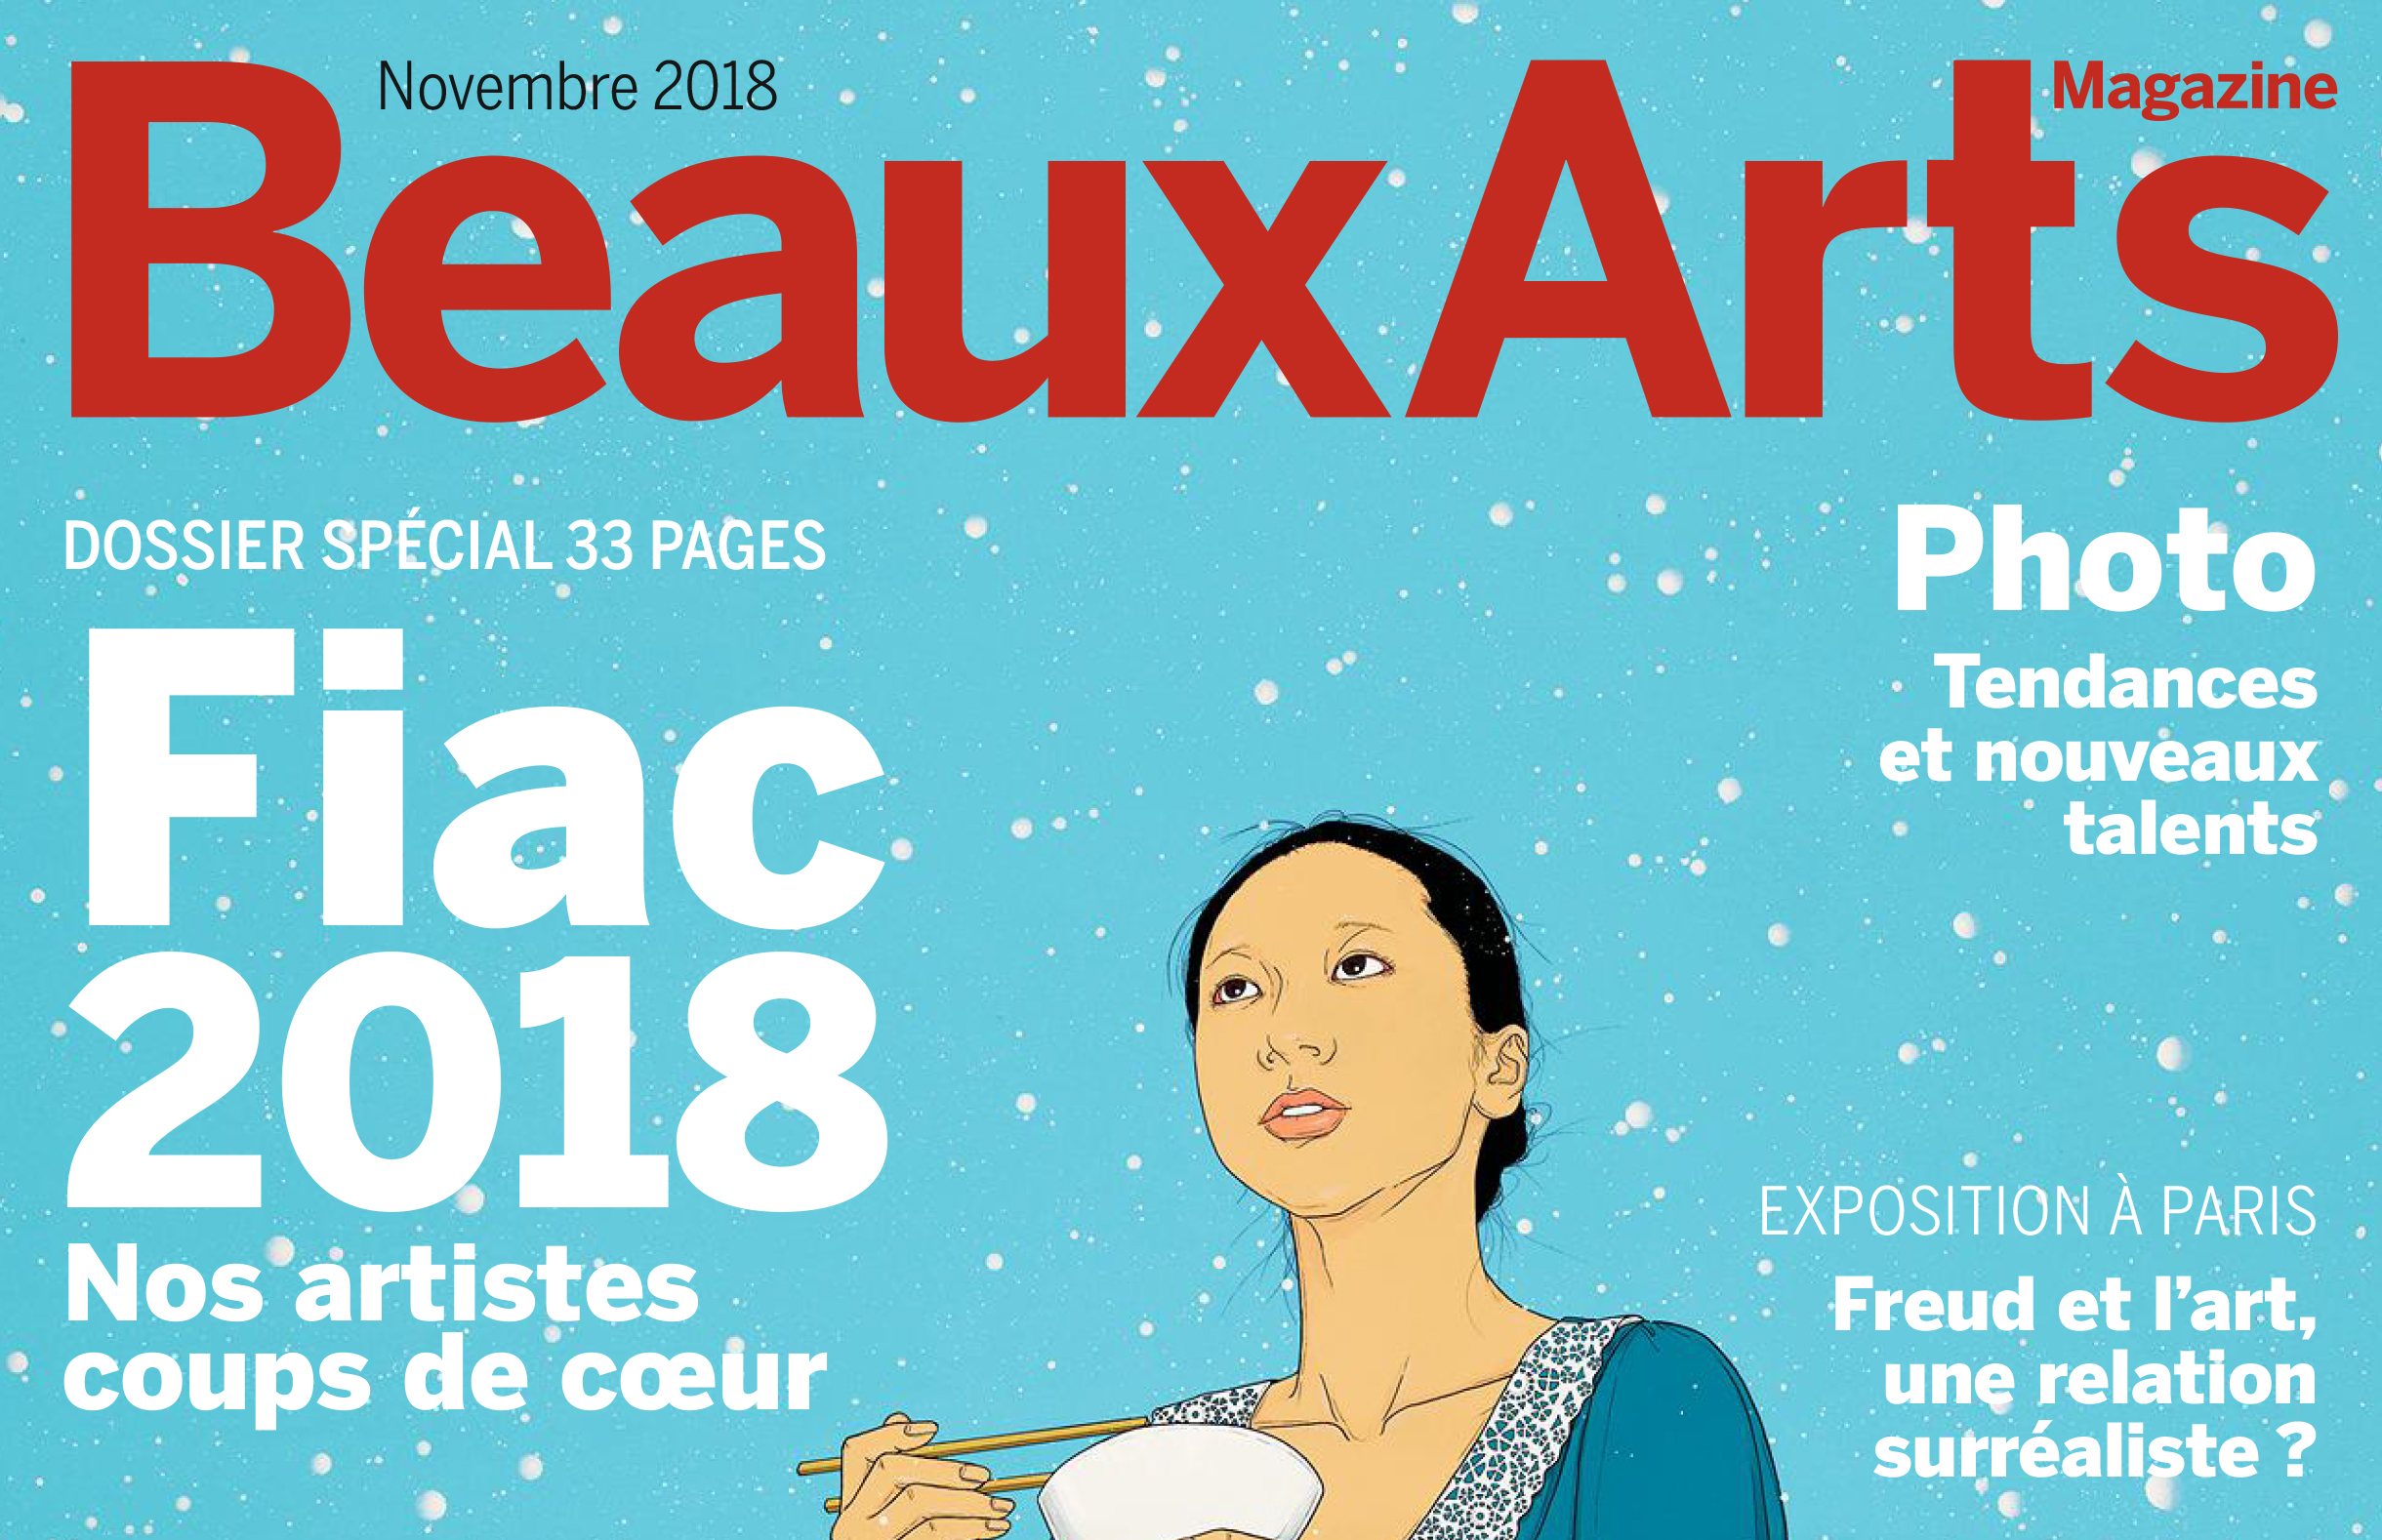 BEAUX-ARTS MAGAZINE | Les Nymphéas en immersion impressionniste